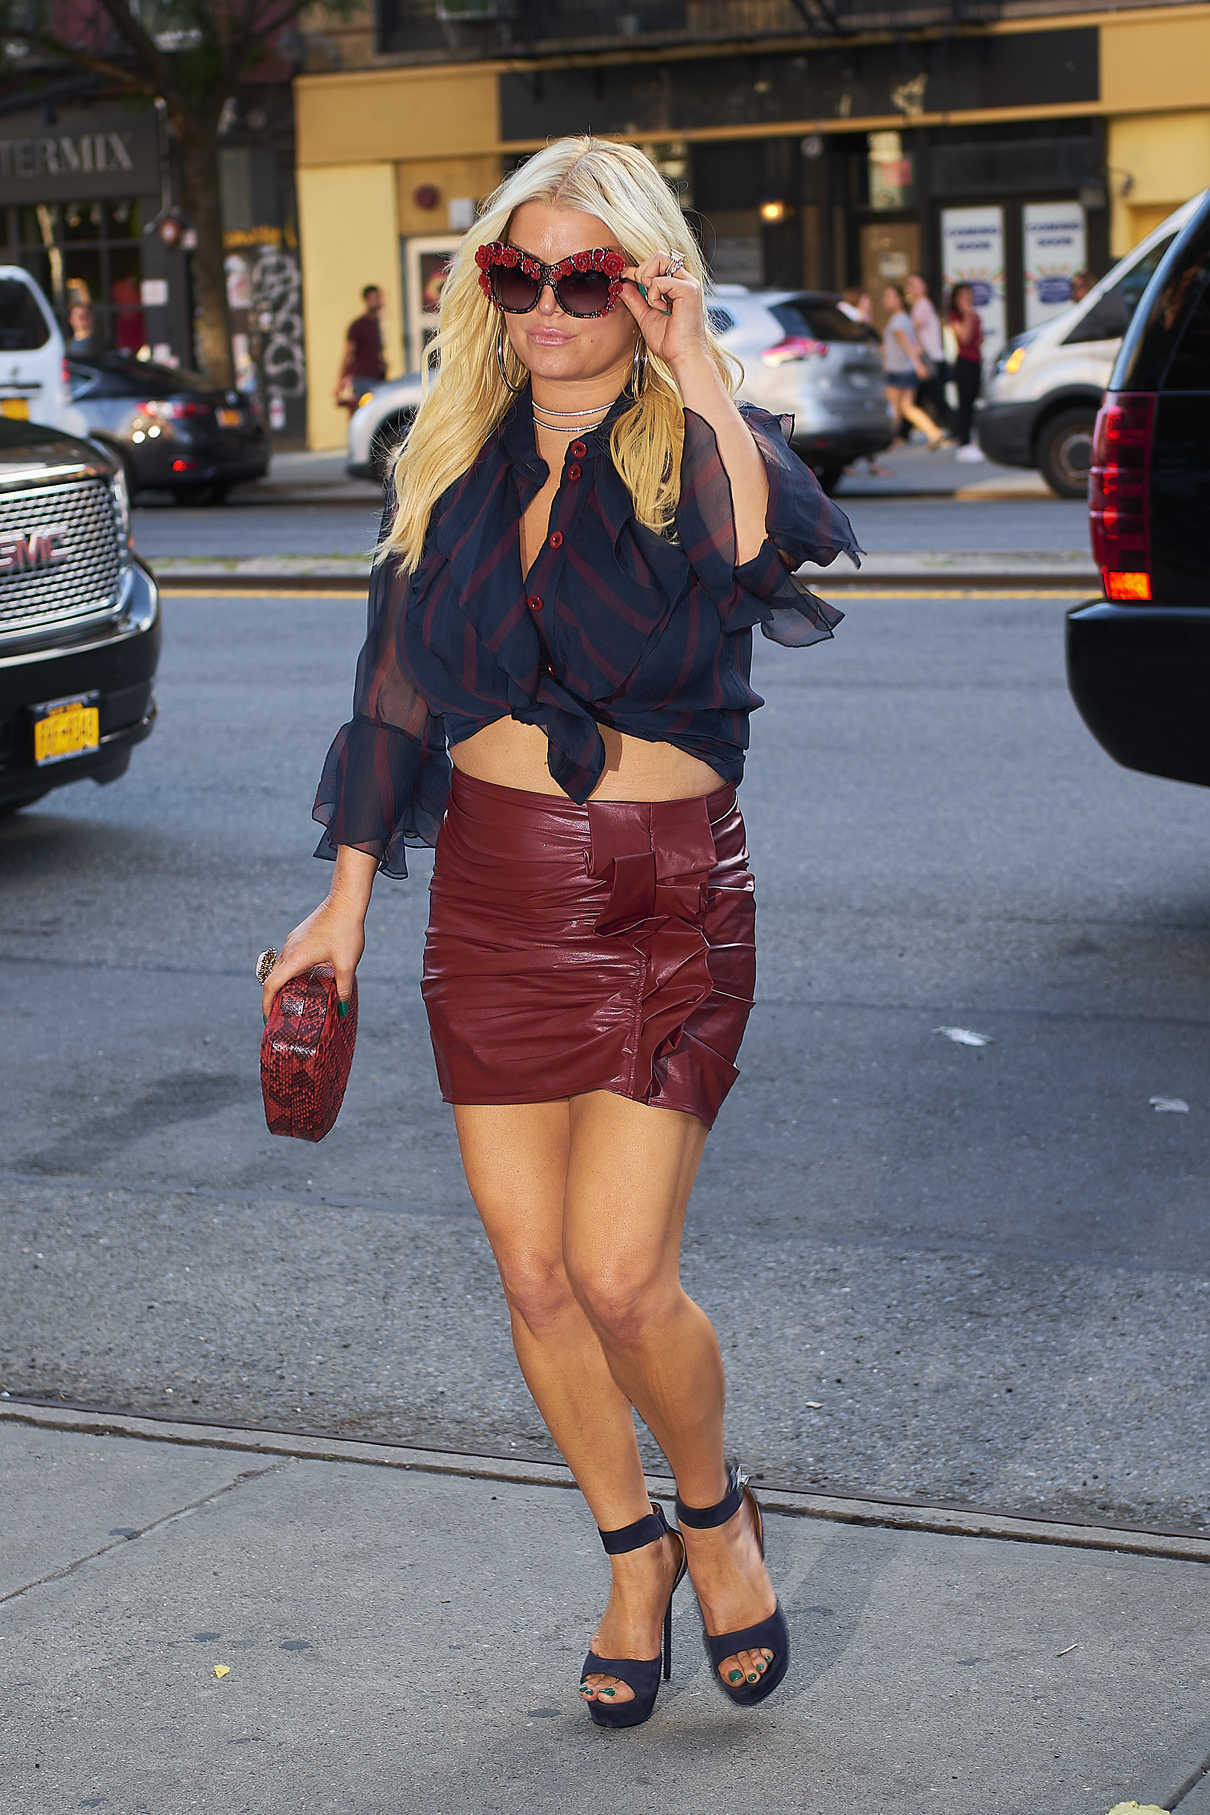 Jessica Simpson Wears a Tight Red Skirt in New York City 08/08/2017